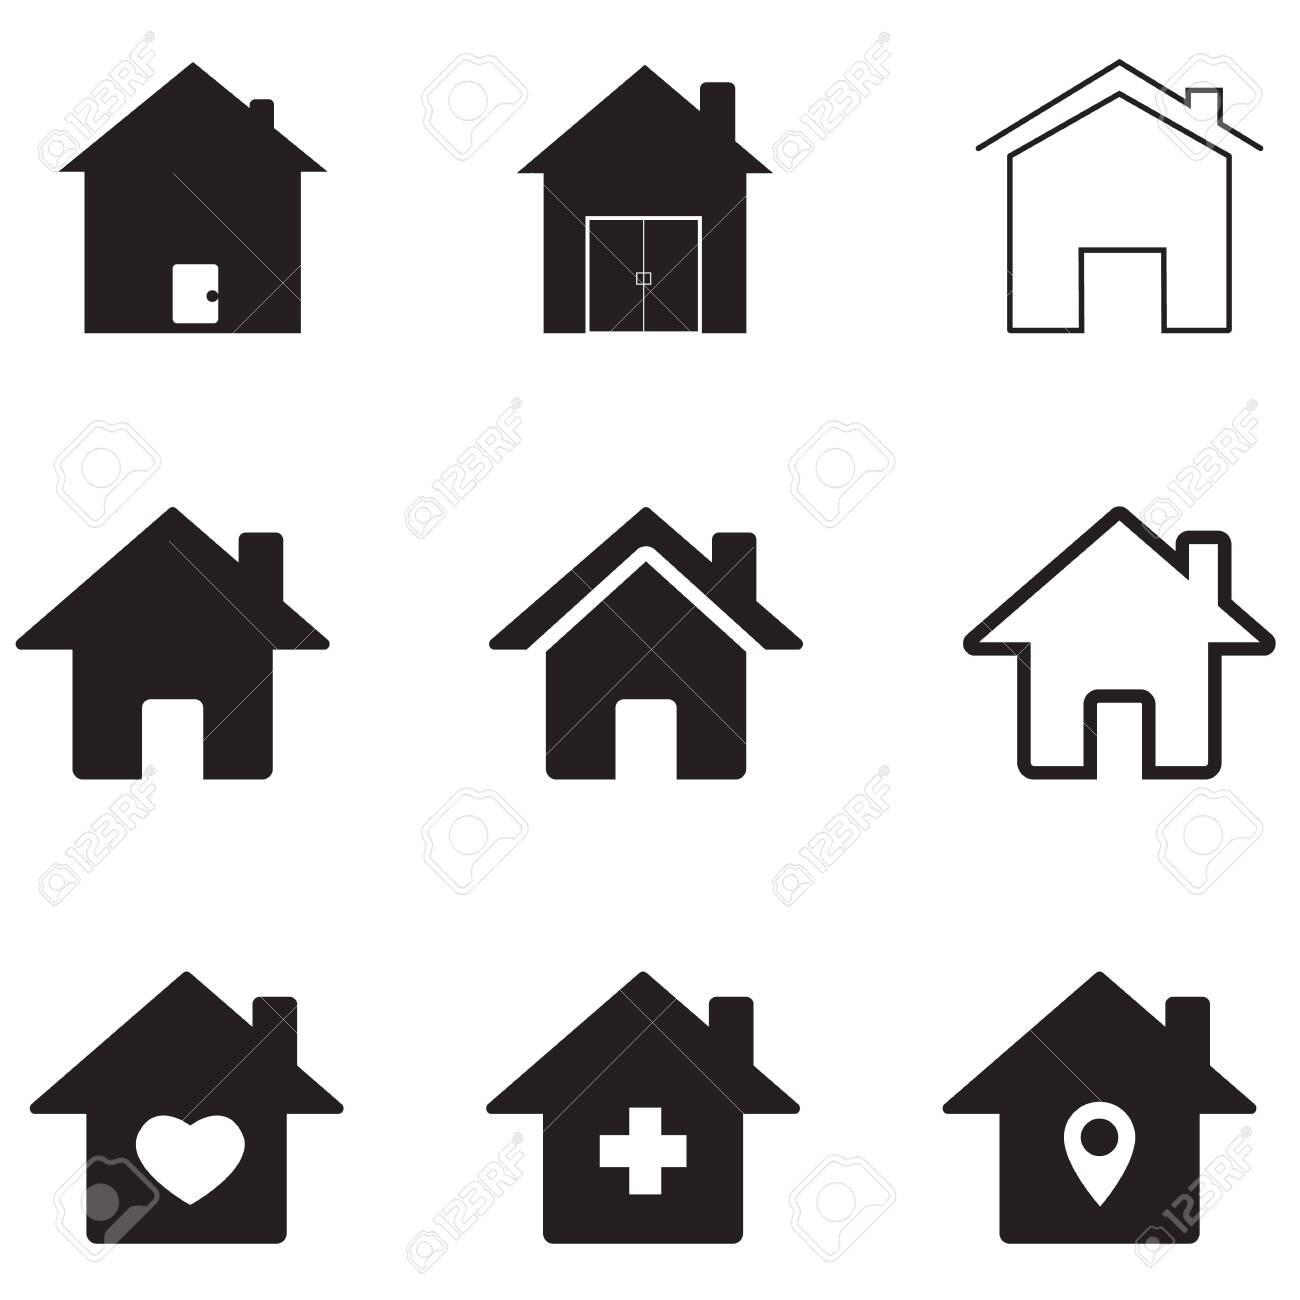 houses icon on white background. flat style. homes icon for your web site design, app, UI. real estate symbol. house sign. - 128108720